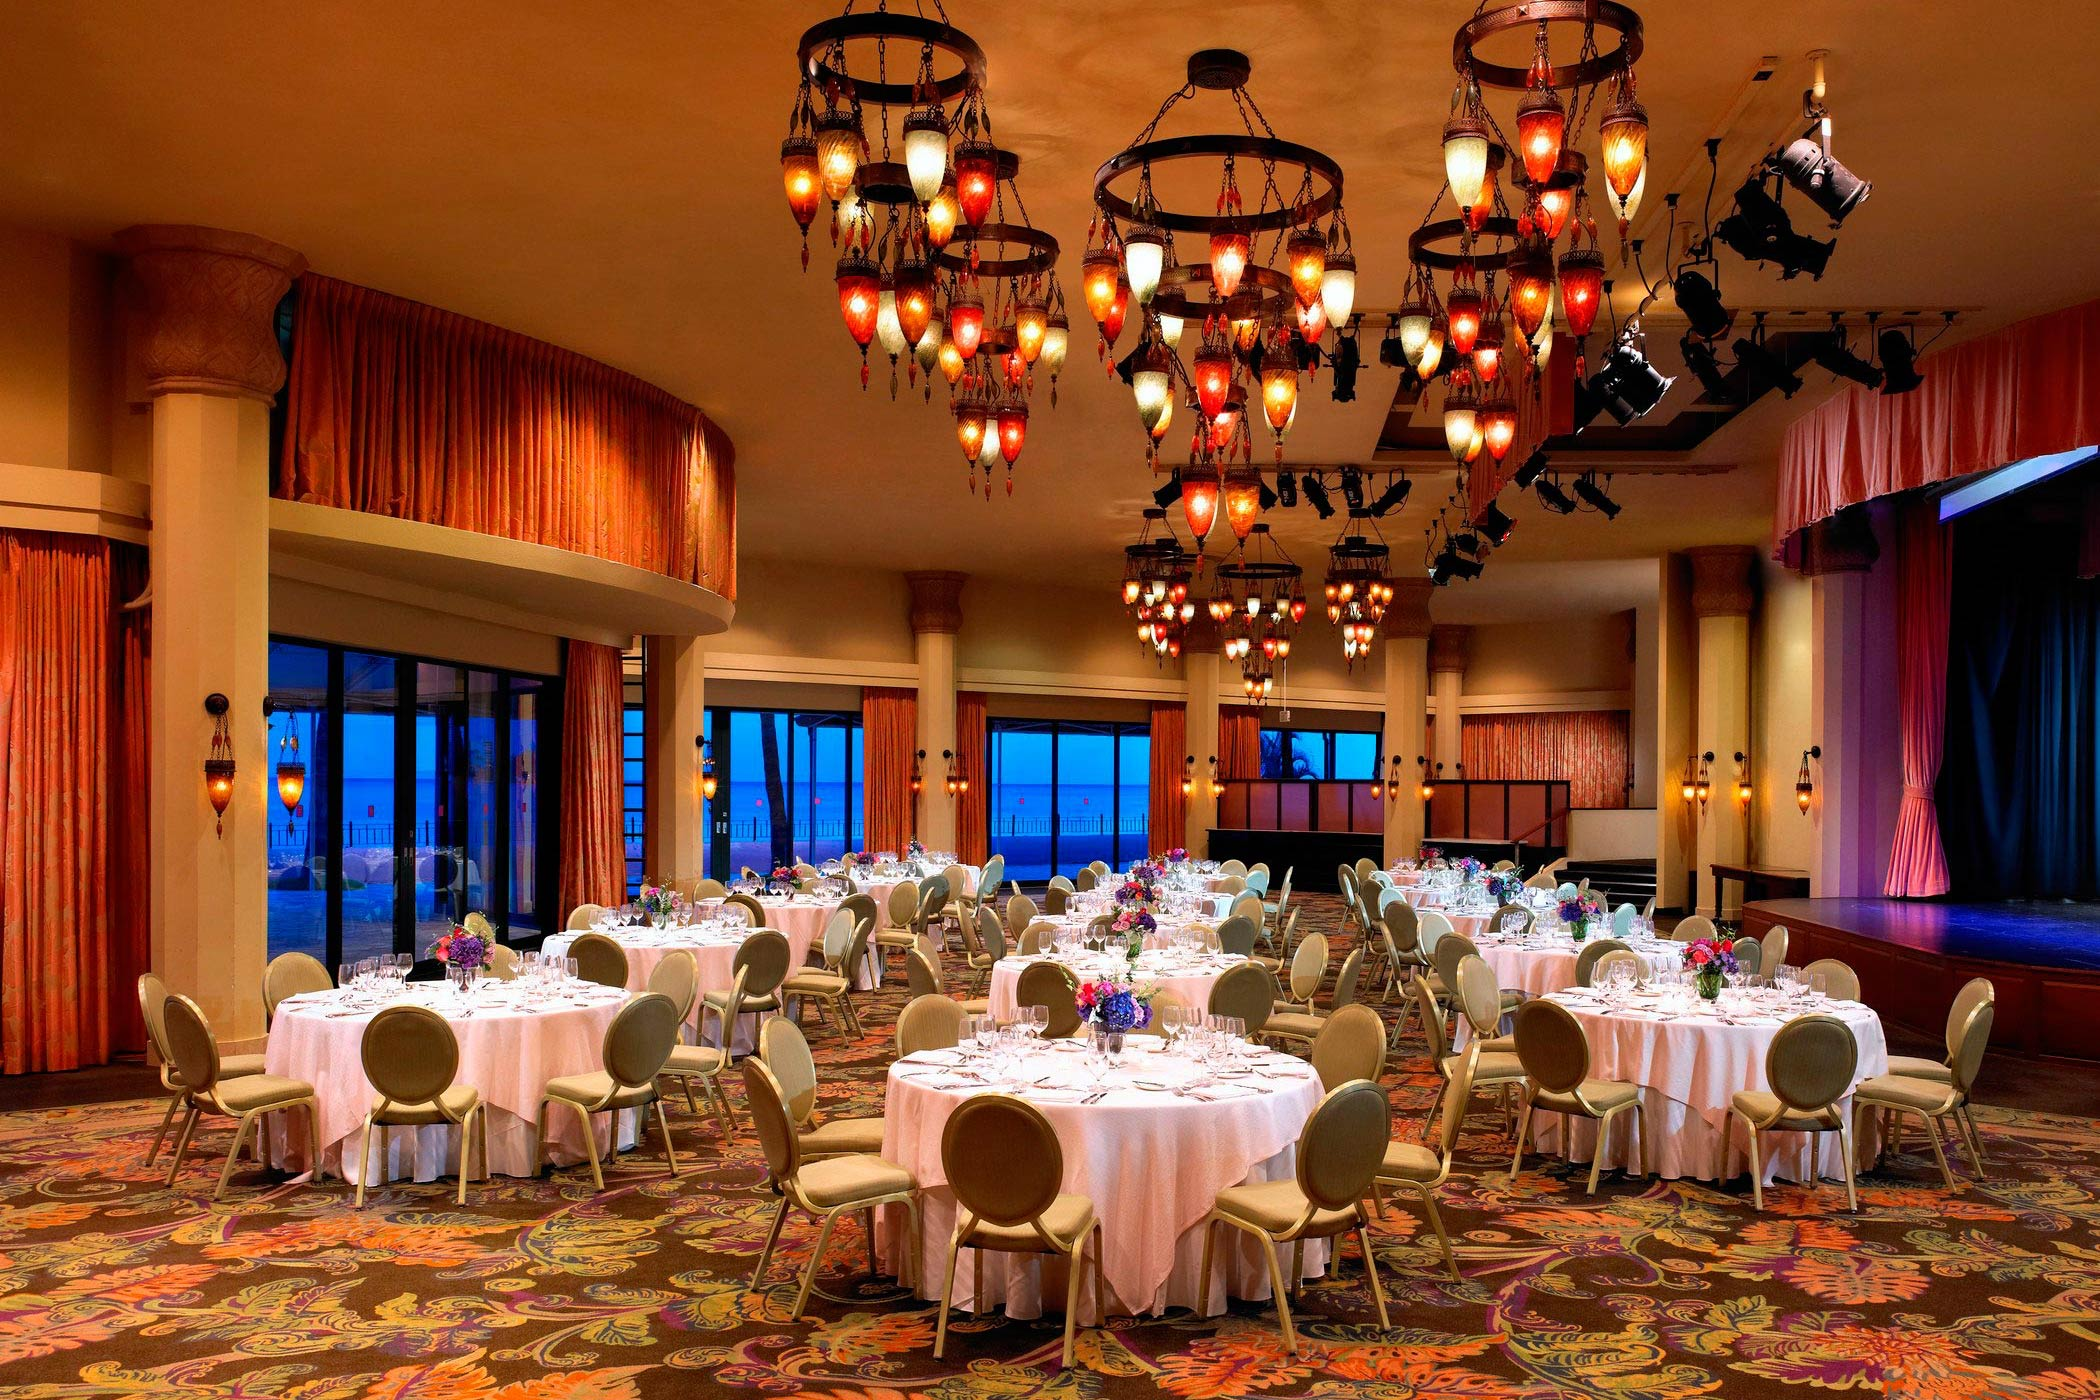 chairs and tables set up inside building with lighted chandeliers